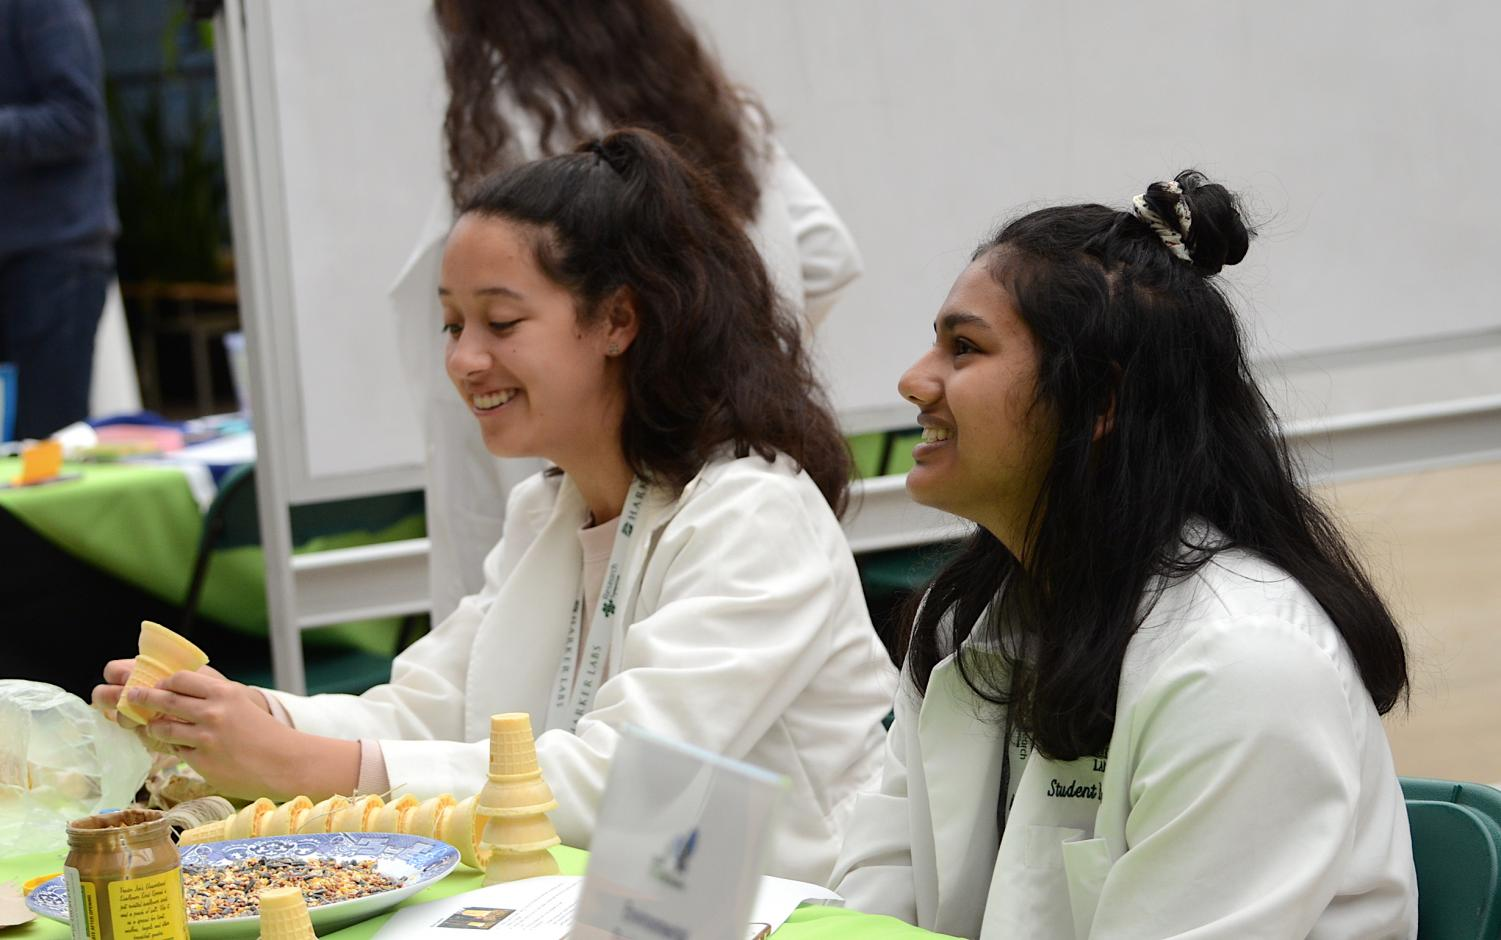 WiSTEM volunteers Emma Dionne (10) and Vidya Jeyendran (10) lead one of the tables for WiSTEM's food-based modeling activity. The symposium's scheduled events included exhibit tables, keynote speakers, student and alumni panels, poster presentations and a variety of other activities and workshops.